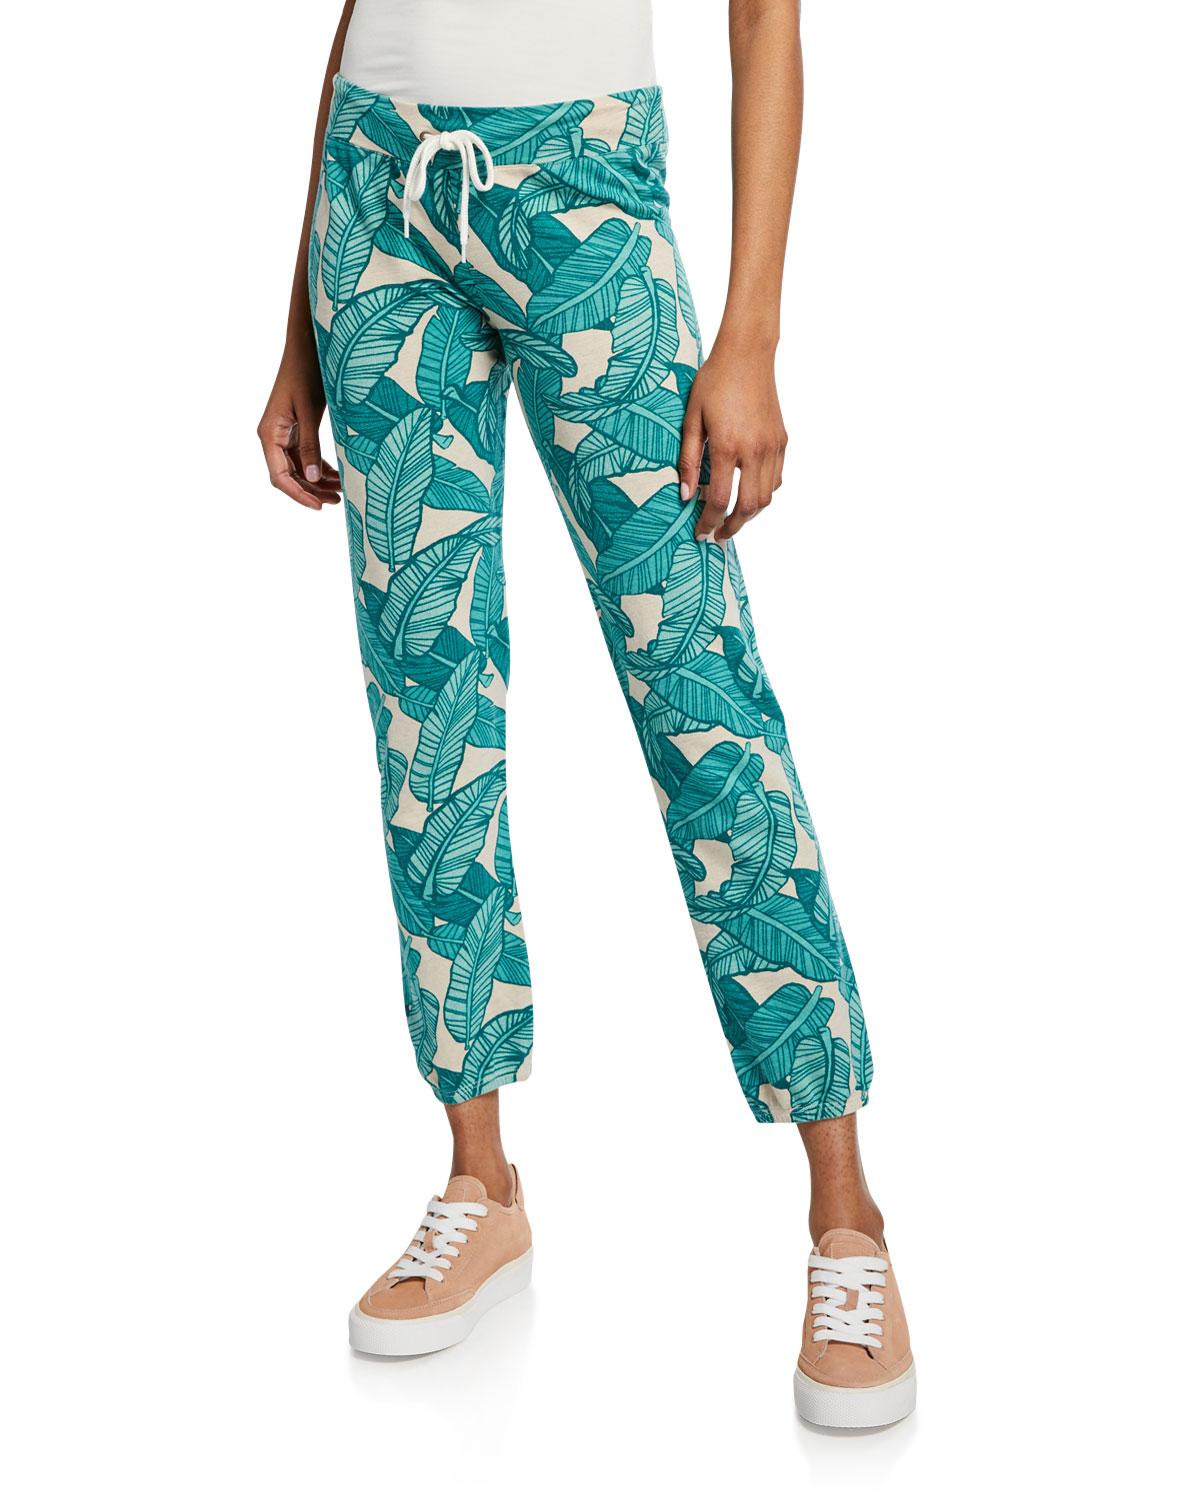 promo code new high quality latest releases Vintage Banana Leaf-Printed Drawstring Sweatpants